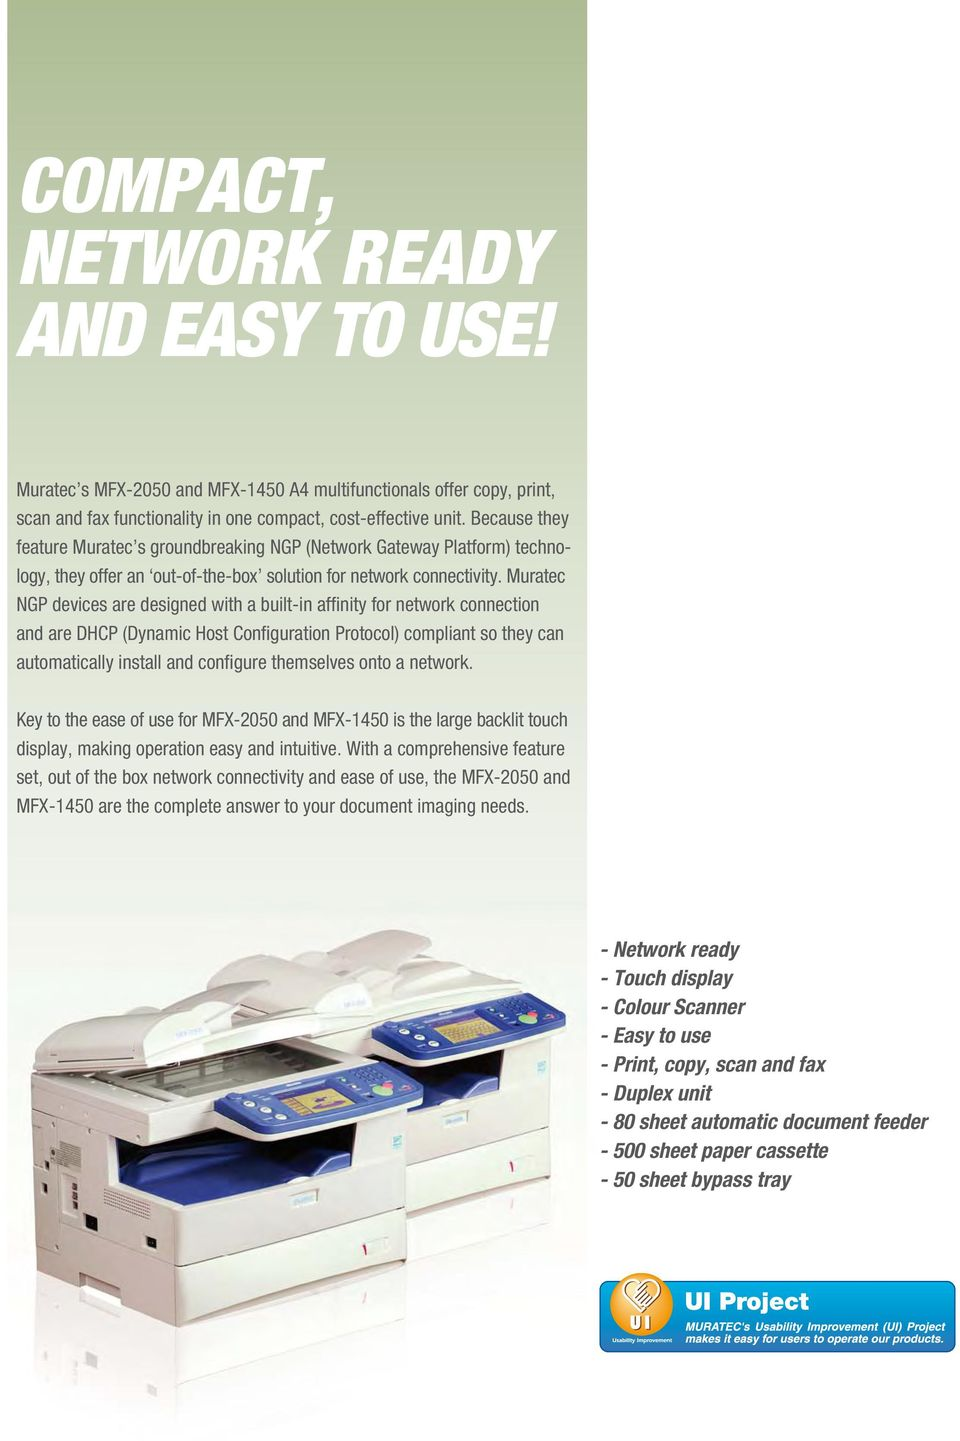 Muratec NGP devices are designed with a built-in affi nity for network connection and are DHCP (Dynamic Host Confi guration Protocol) compliant so they can automatically install and confi gure